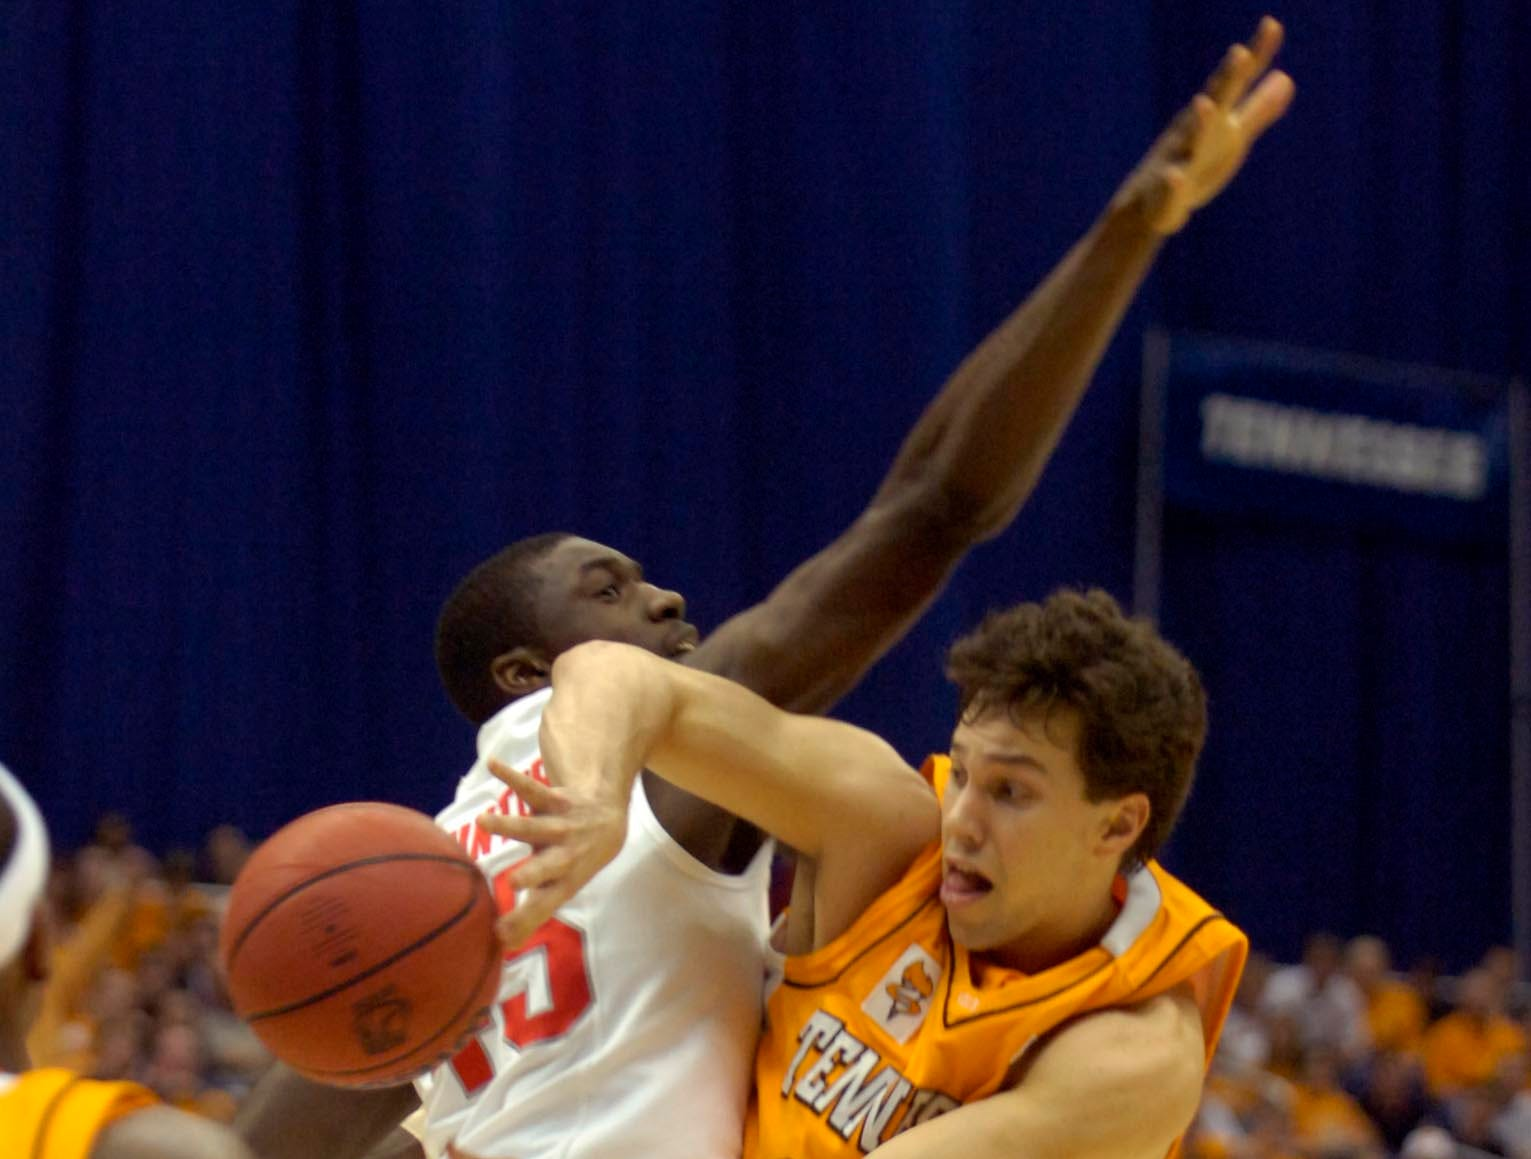 Tennessee's Dane Bradshaw (23) passes around Ohio State's Othello Hunter during the 2007 NCAA basketball tournament South Regional semifinals on Thursday in San Antonio, Texas. Tennessee lost the game 85-84.